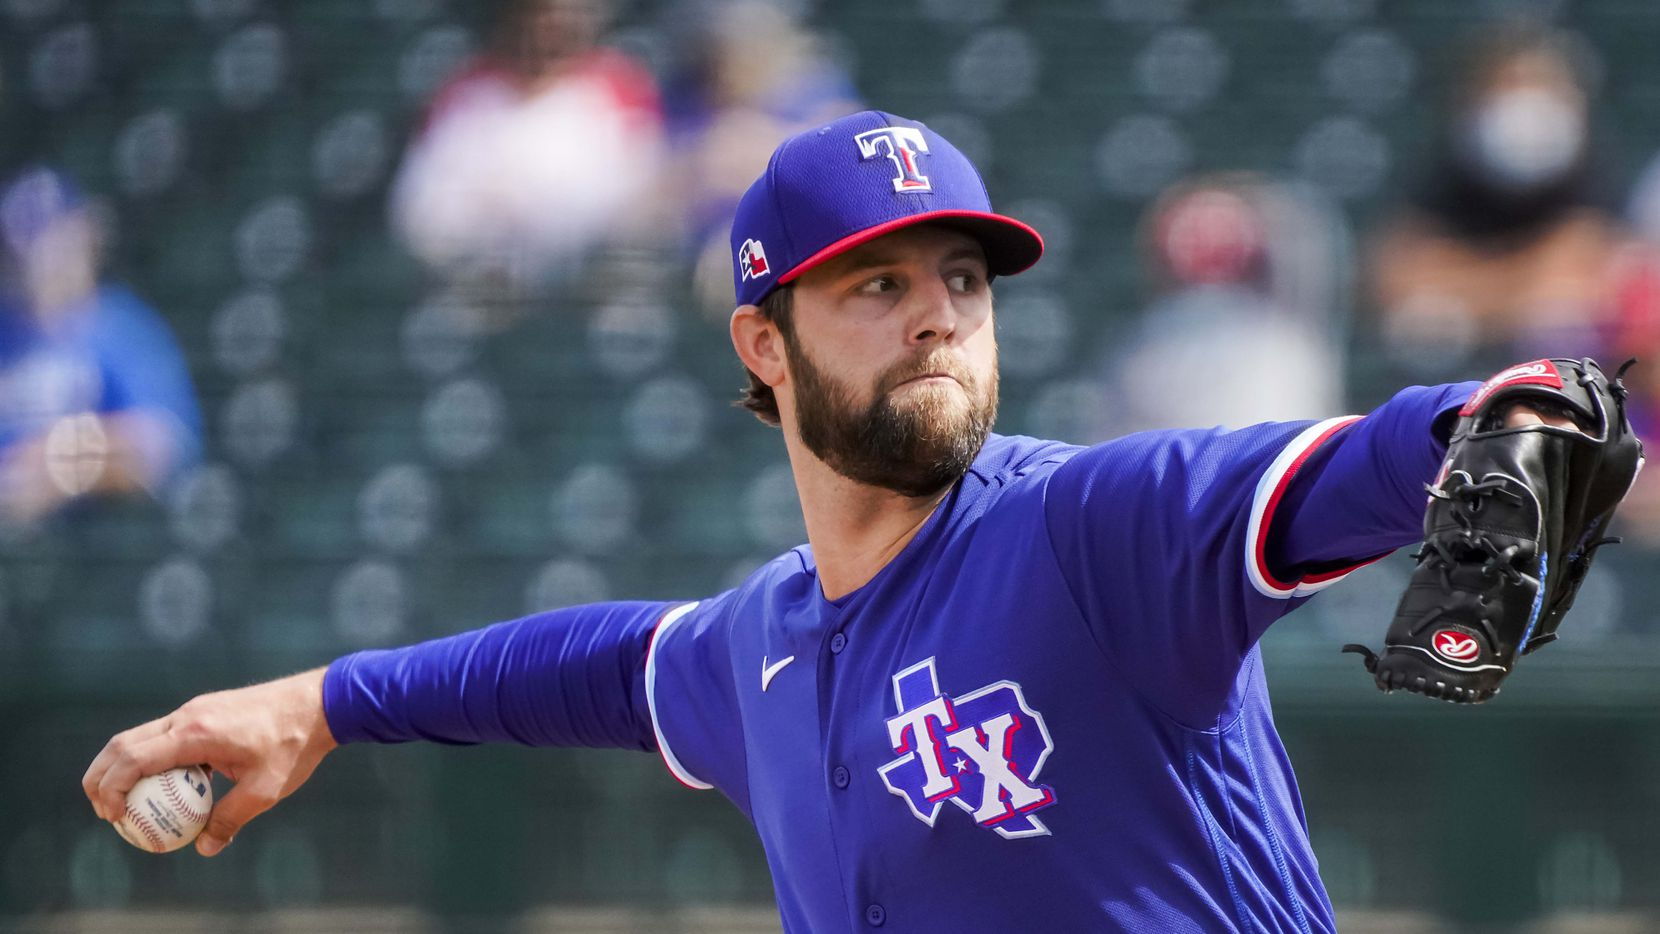 Texas Rangers pitcher Jordan Lyles delivers during the third inning of a spring training game against the Los Angeles Dodgers at Surprise Stadium on Sunday, March 7, 2021, in Surprise, Ariz.